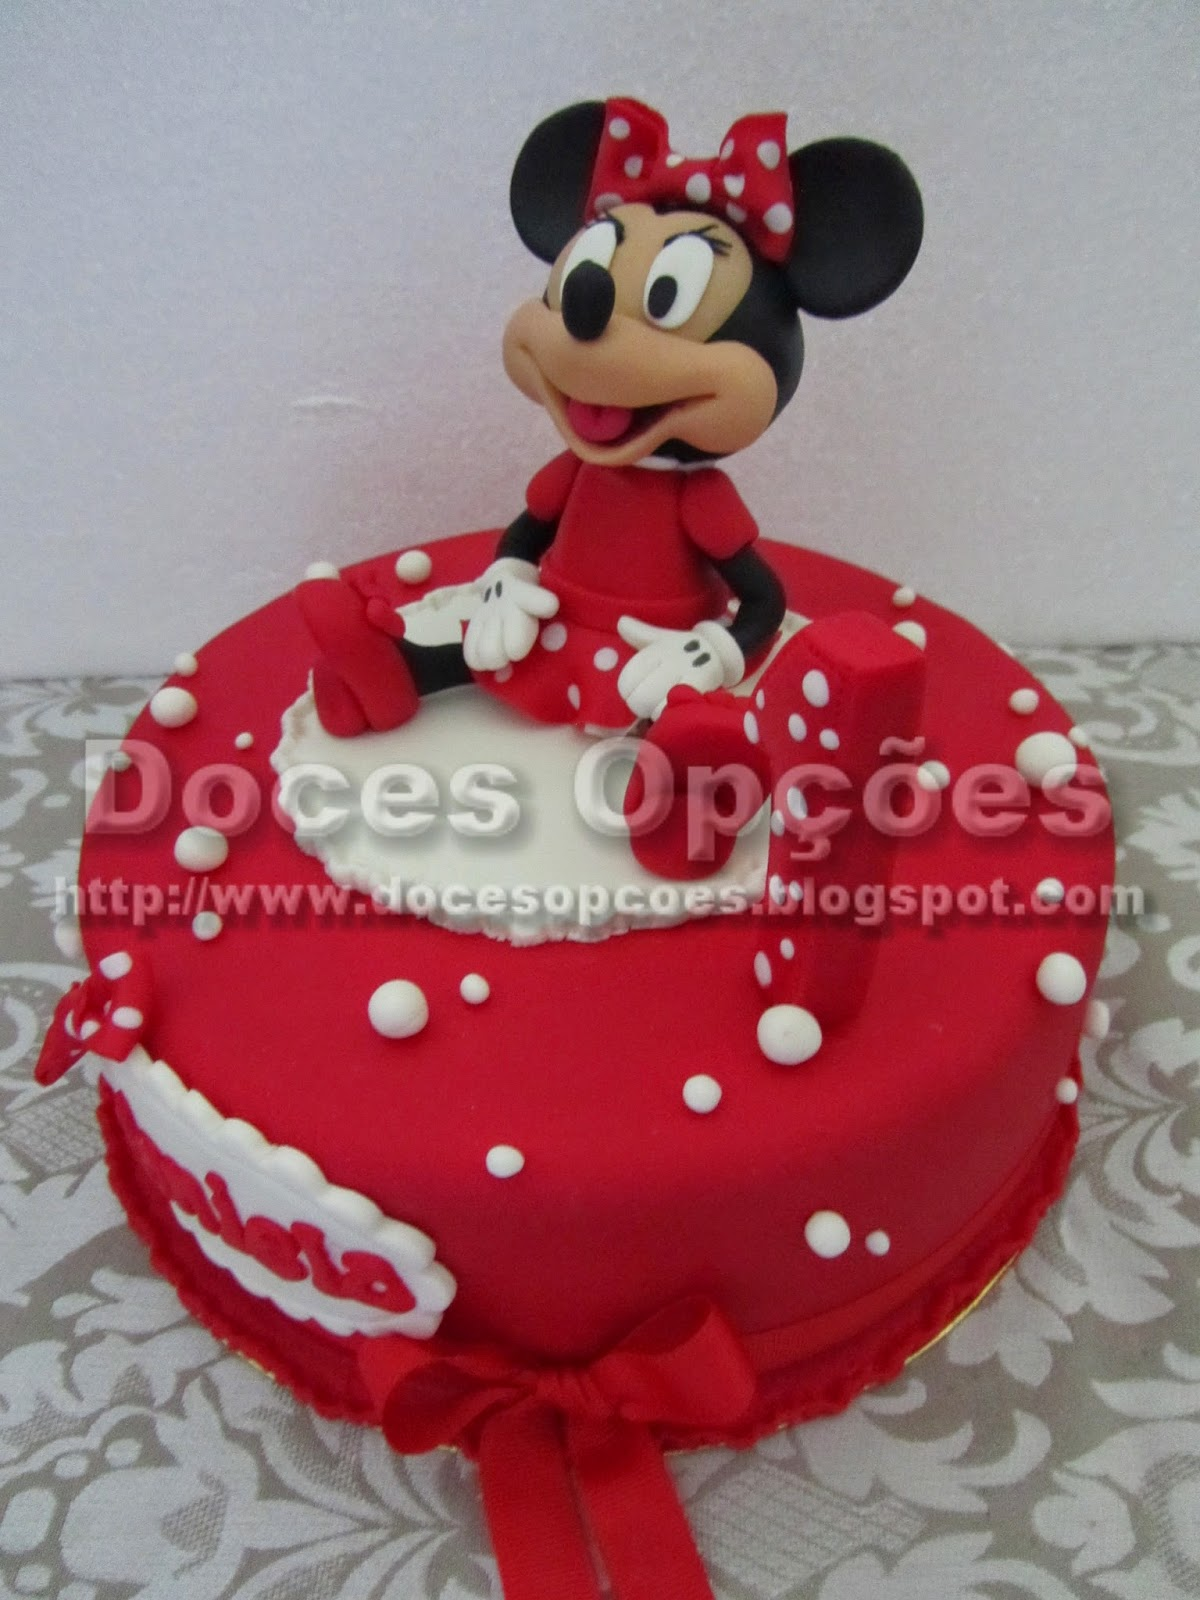 disney's minnie cake